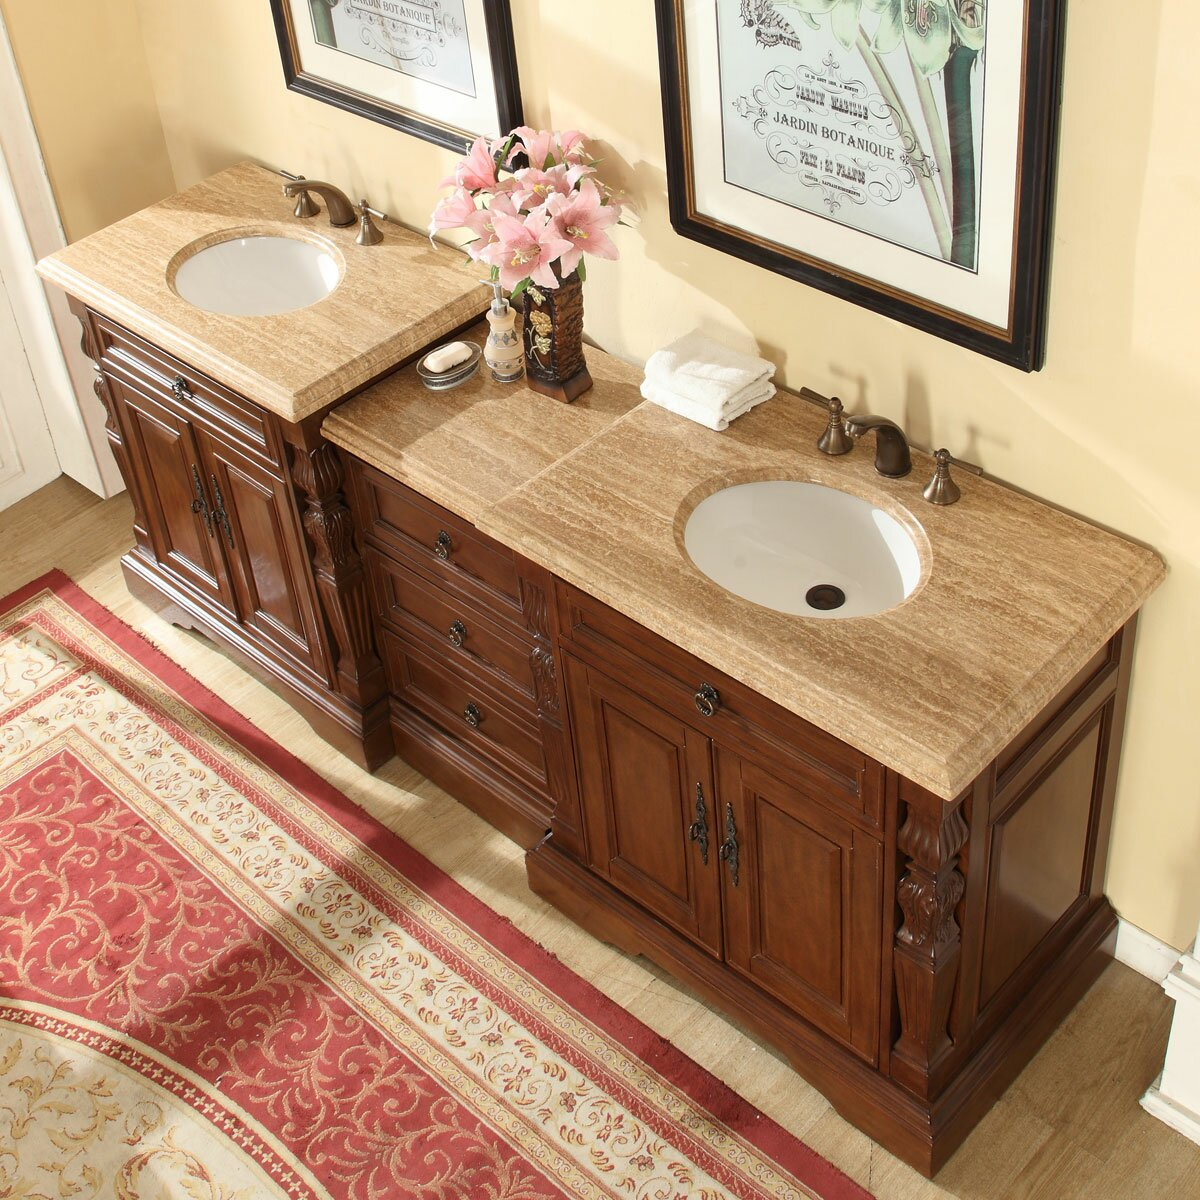 Silkroad exclusive 90 double sink bathroom modular vanity set reviews wayfair Bathroom sink and vanity sets